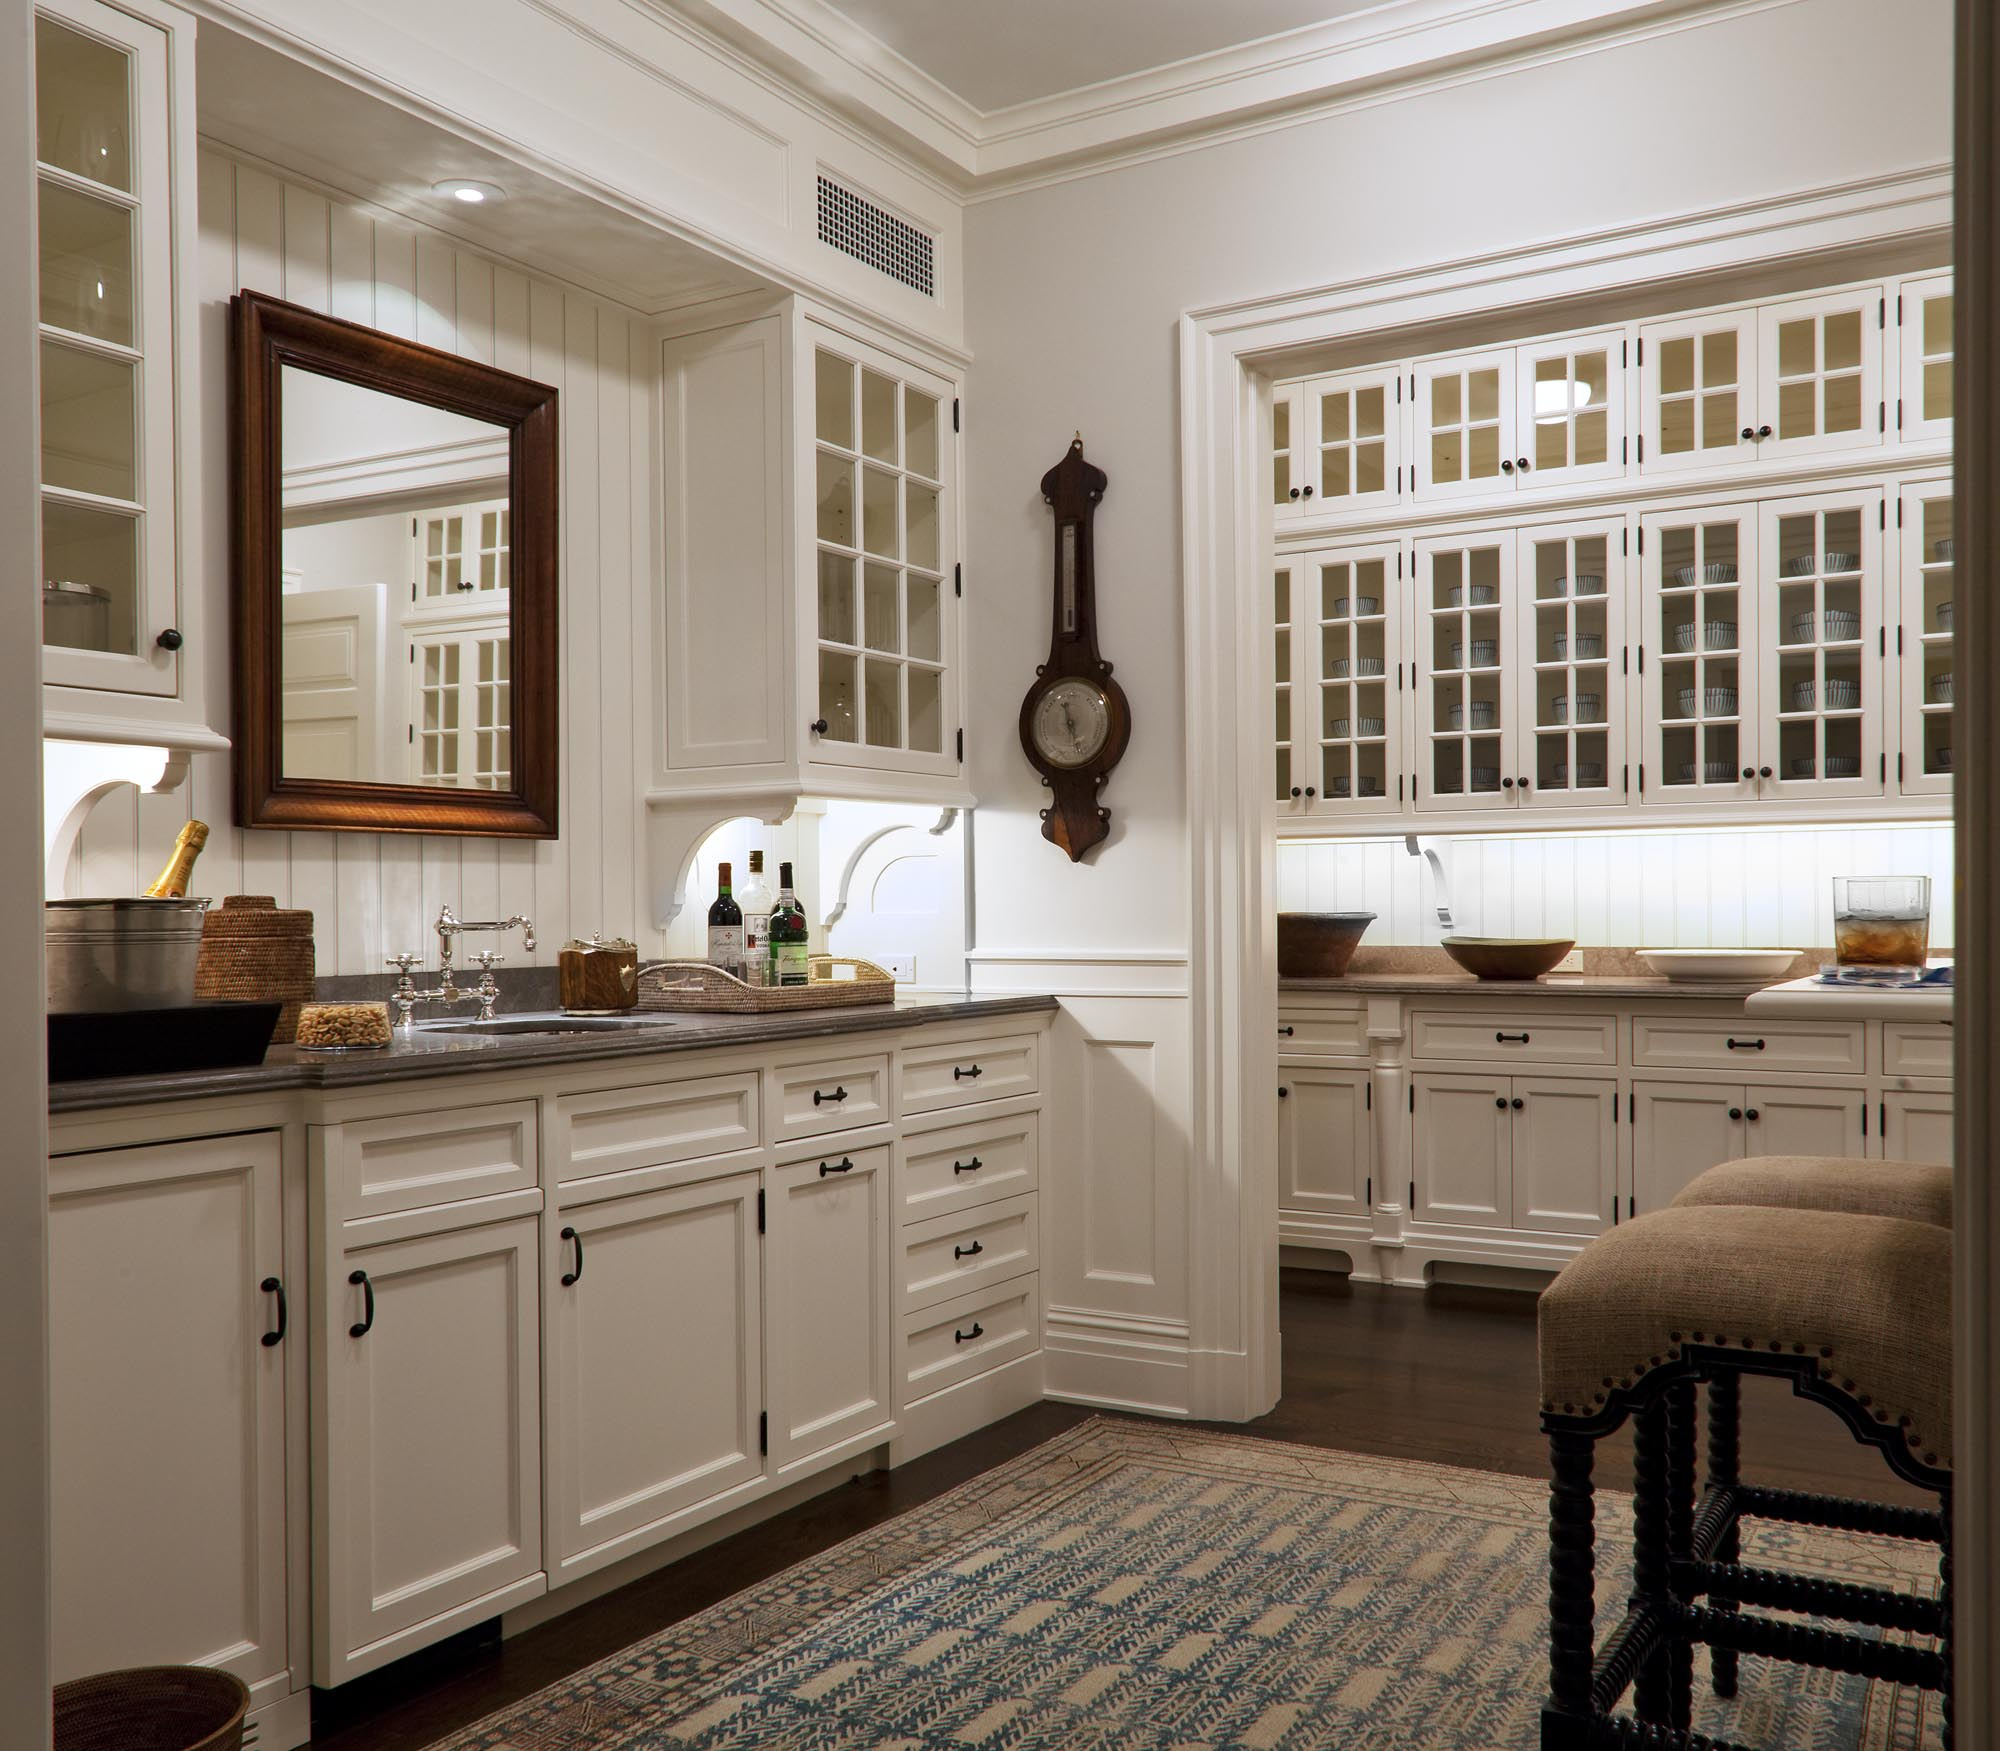 Kitchen Bar East Hampton: KDHamptons Featured Home: East Hampton Perfection At $44